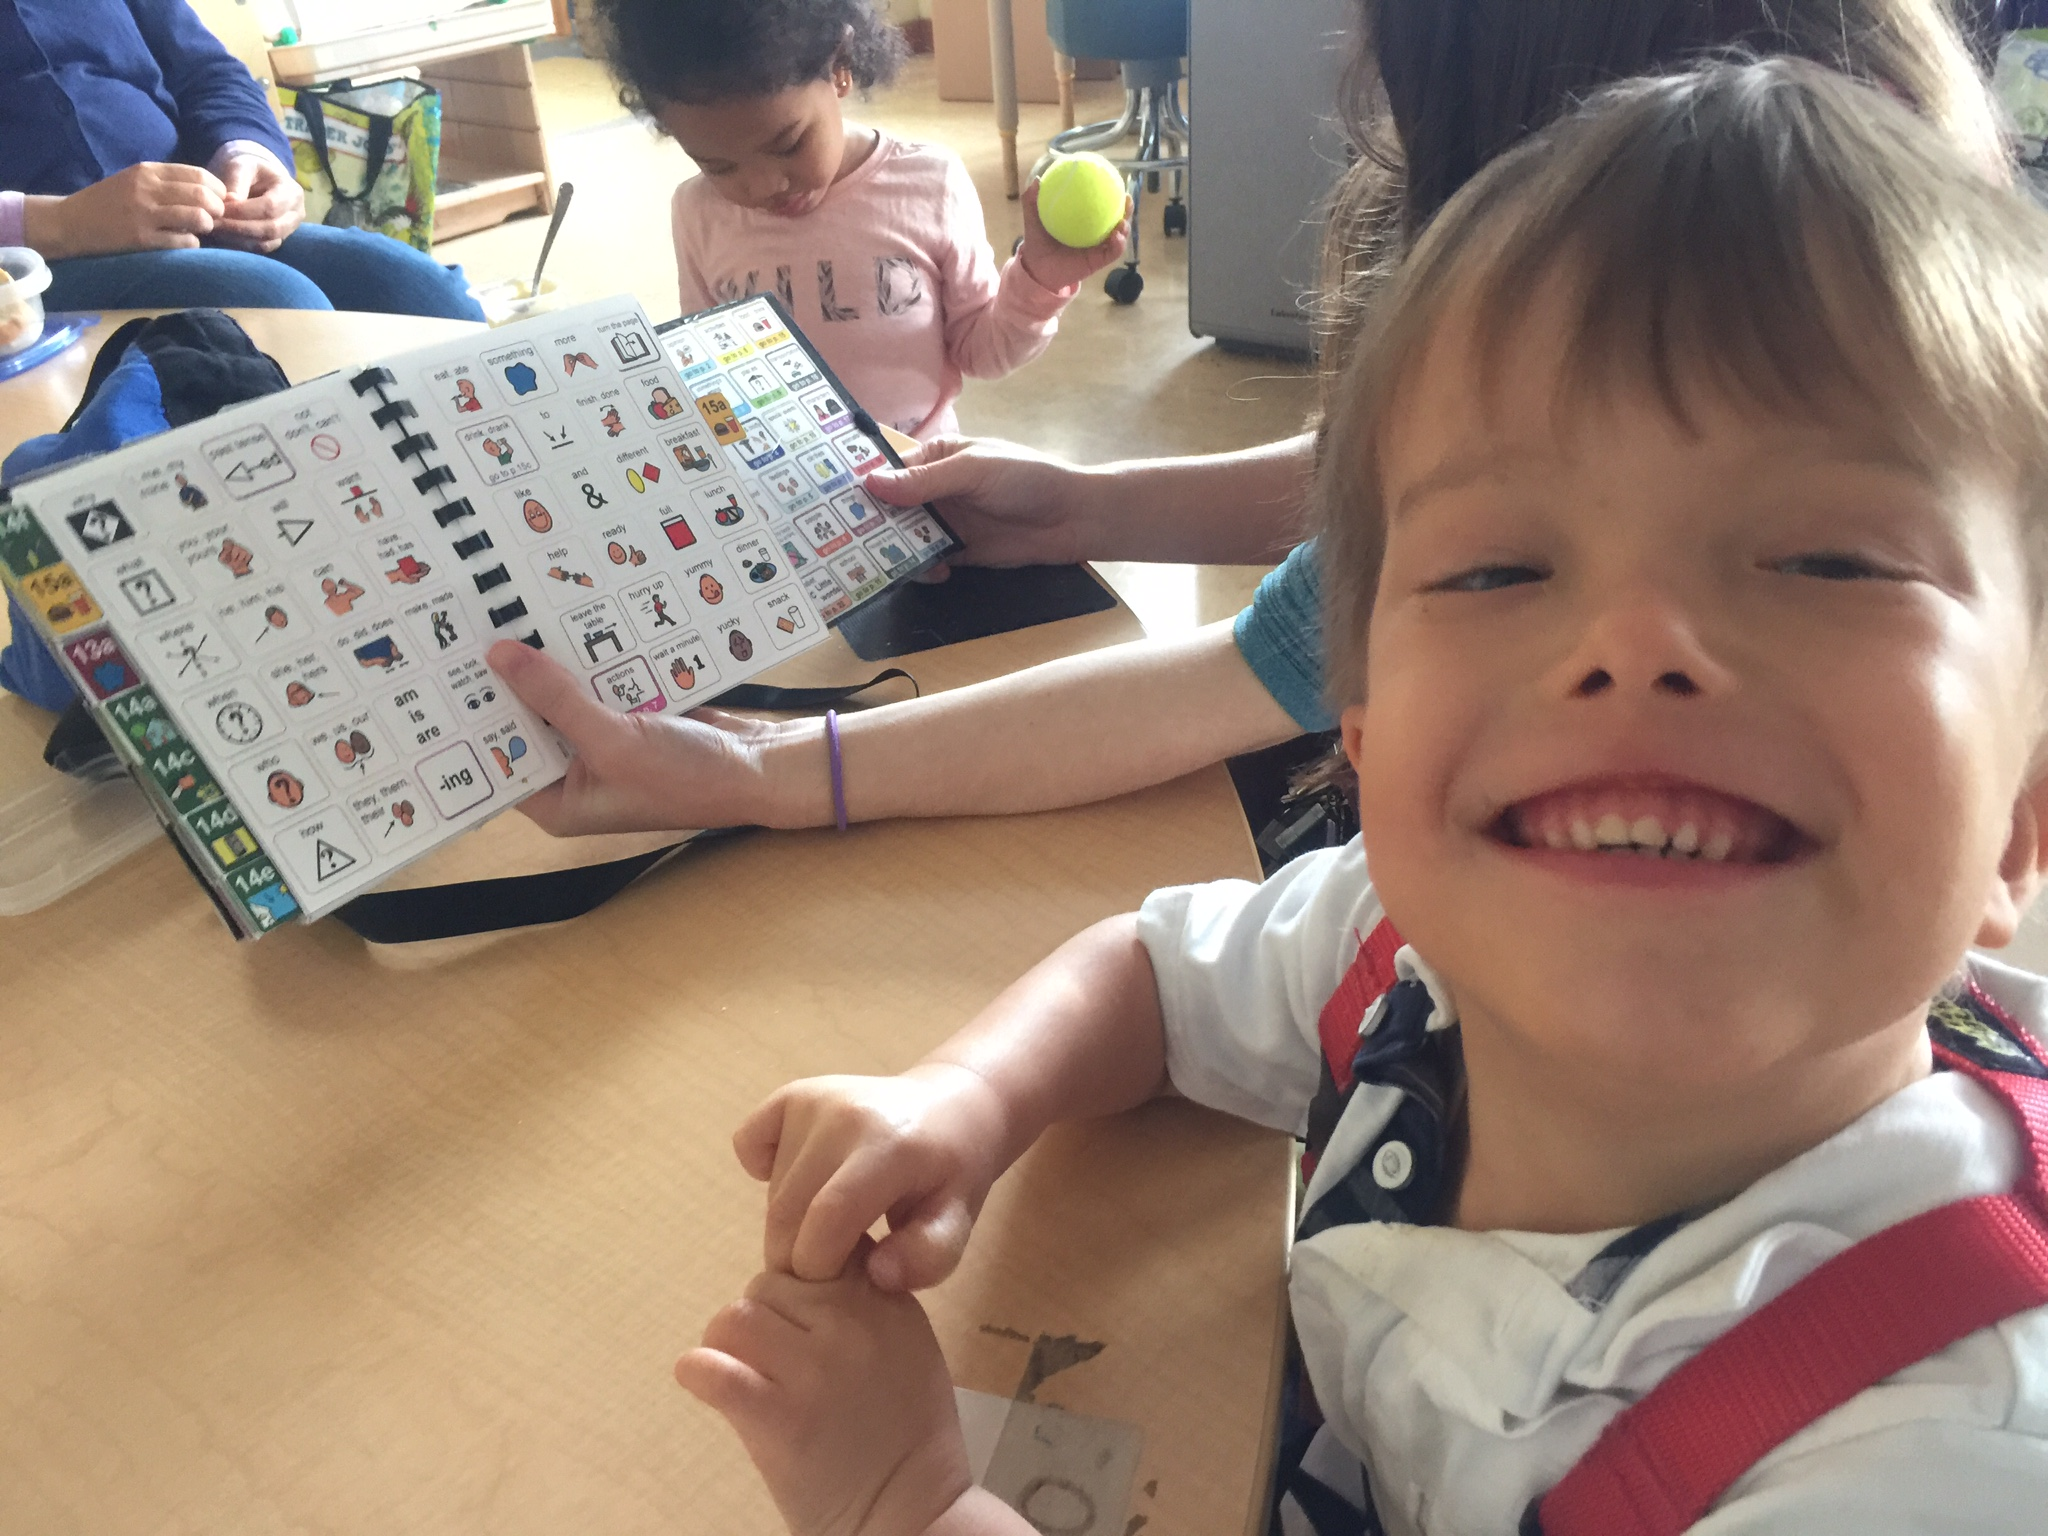 """Milo Lorentzen is learning to read and speak using an alternative language method that incorporates symbols and pictures. He now reads at or above grade level. """"He was starting to have behavioral issues until we gave him this method,"""" says his mother, Karen Park. """"Now Milo has a voice."""""""